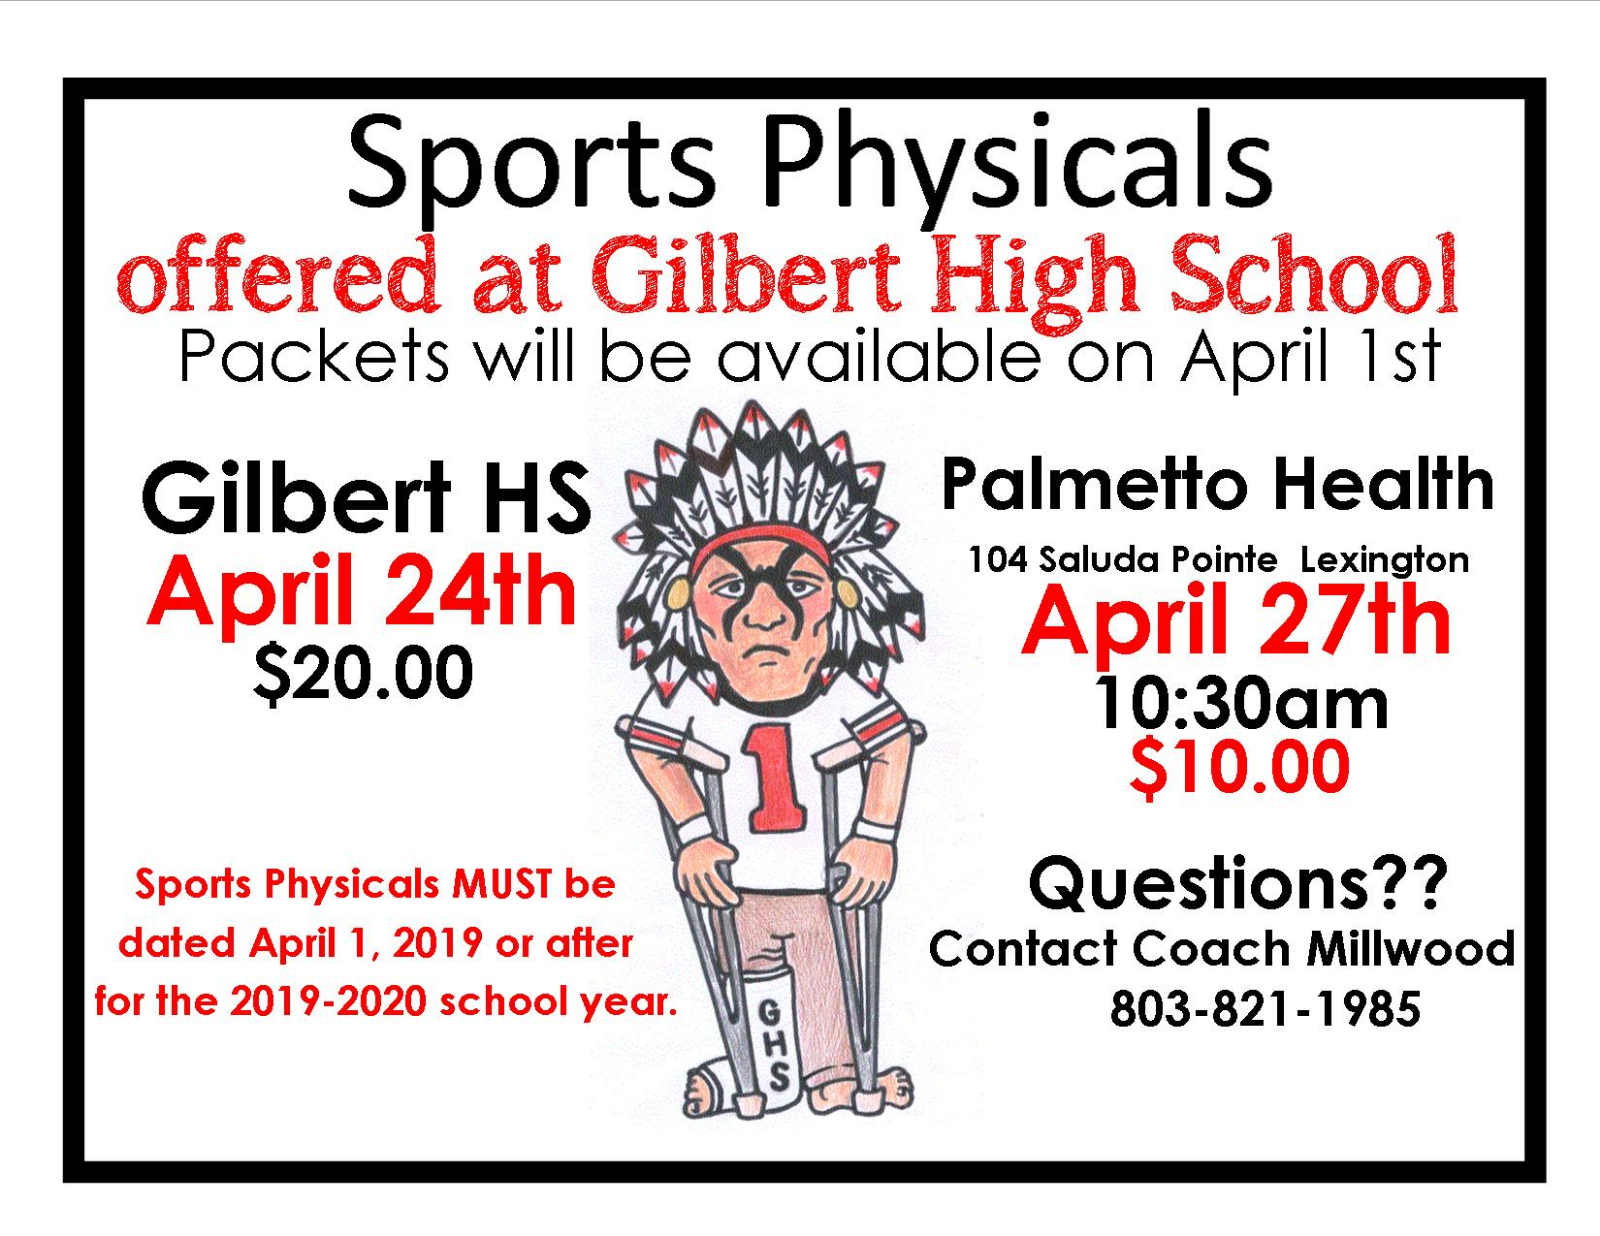 Student Physicals Offered at GHS